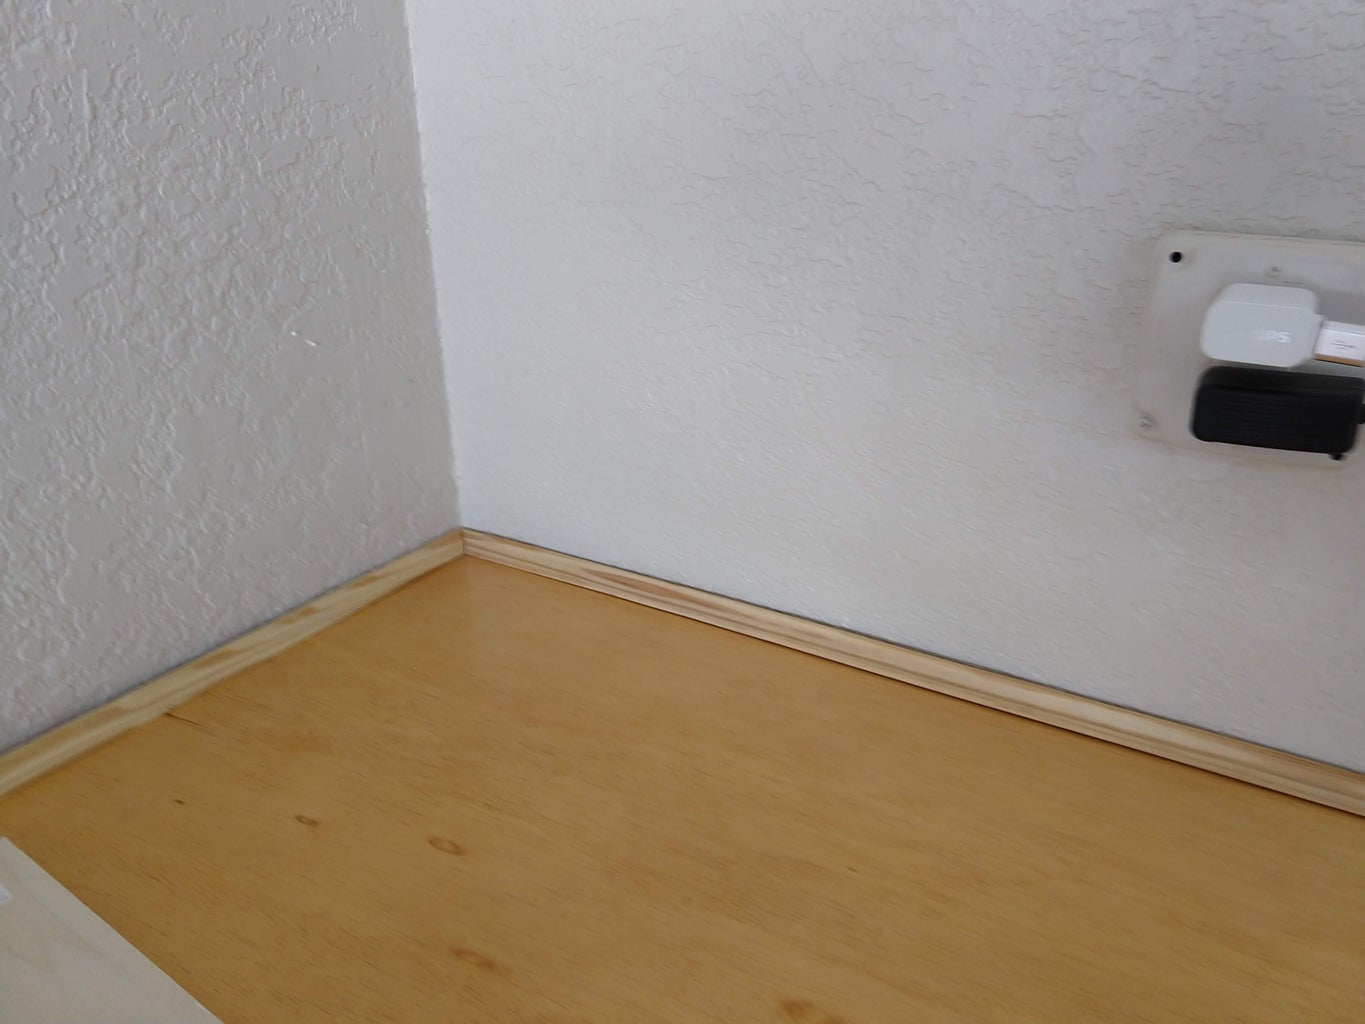 Corner Trim by the Wall